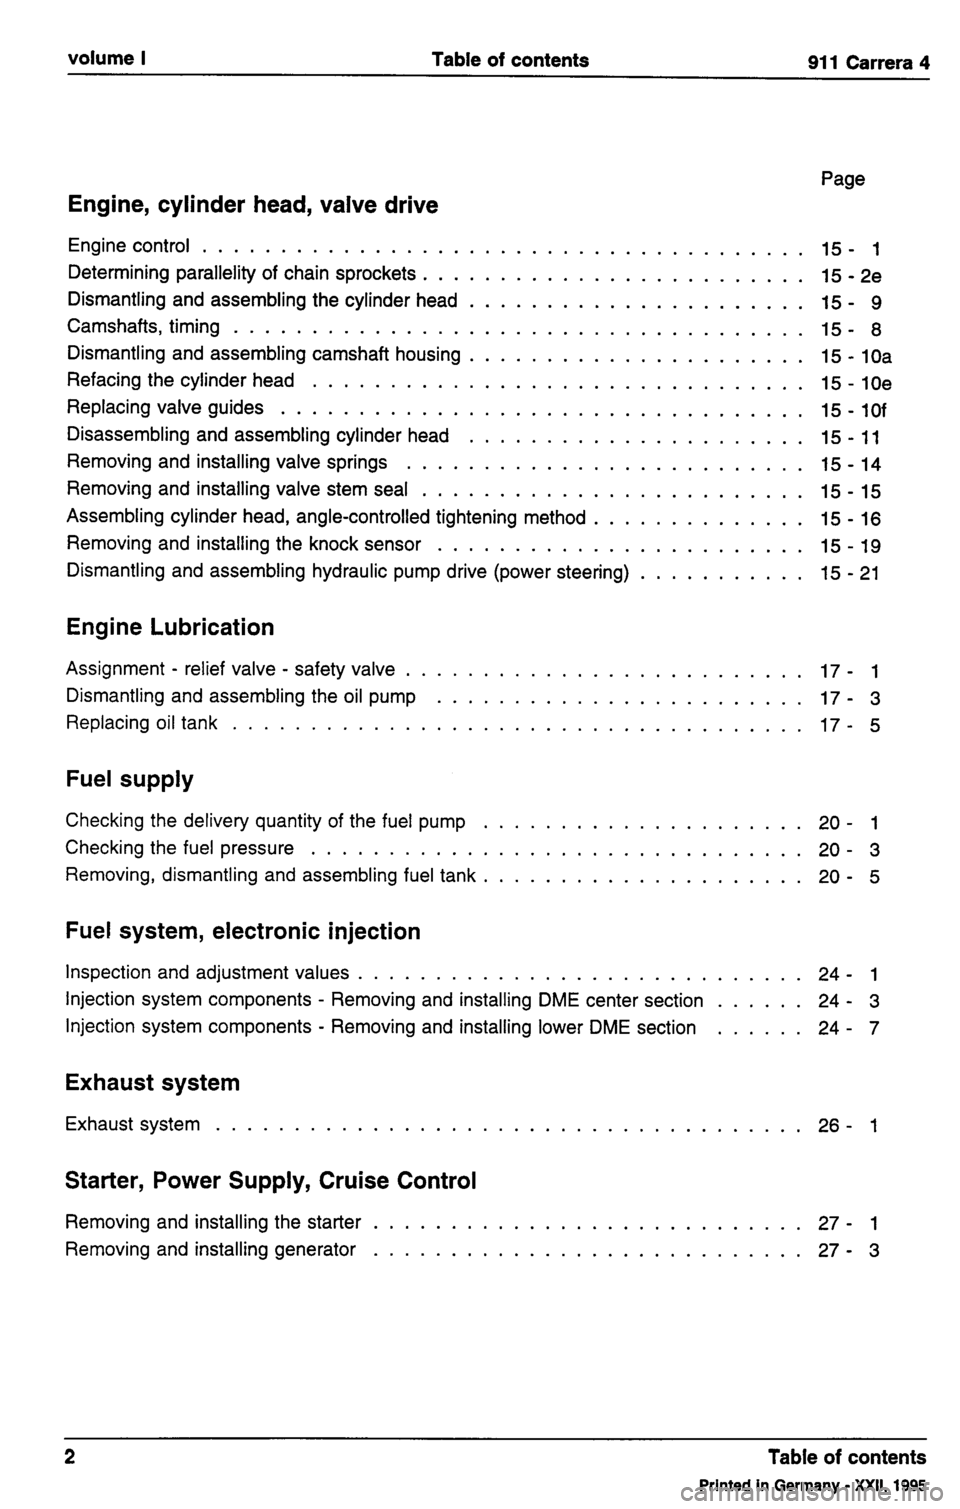 porsche 964 workshop manual pdf